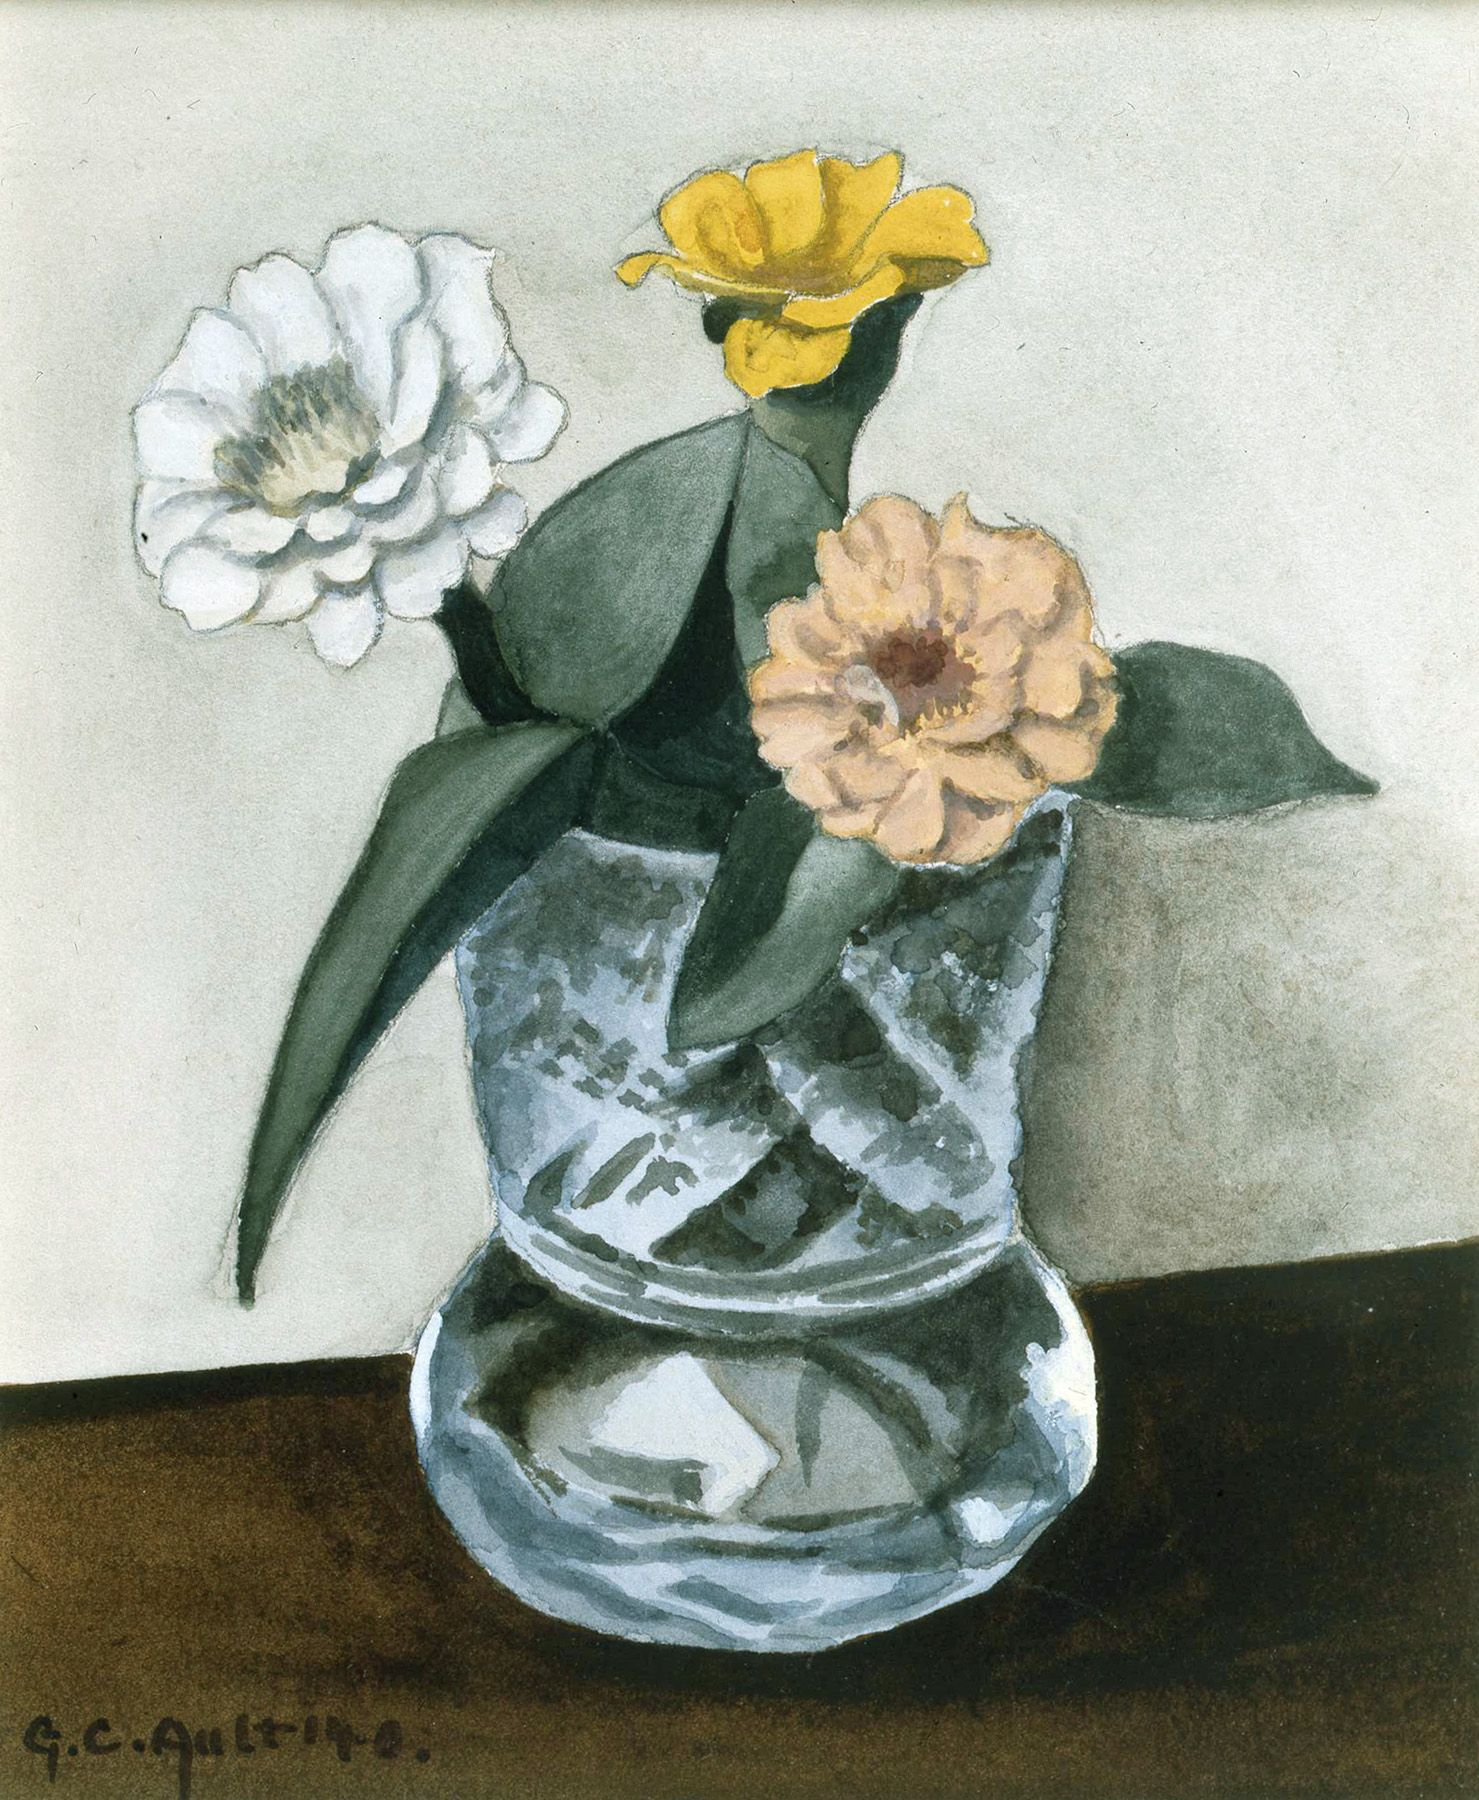 George Copeland Ault, Little Zinnias, 1940, watercolor on paper, 6 x 5 inches